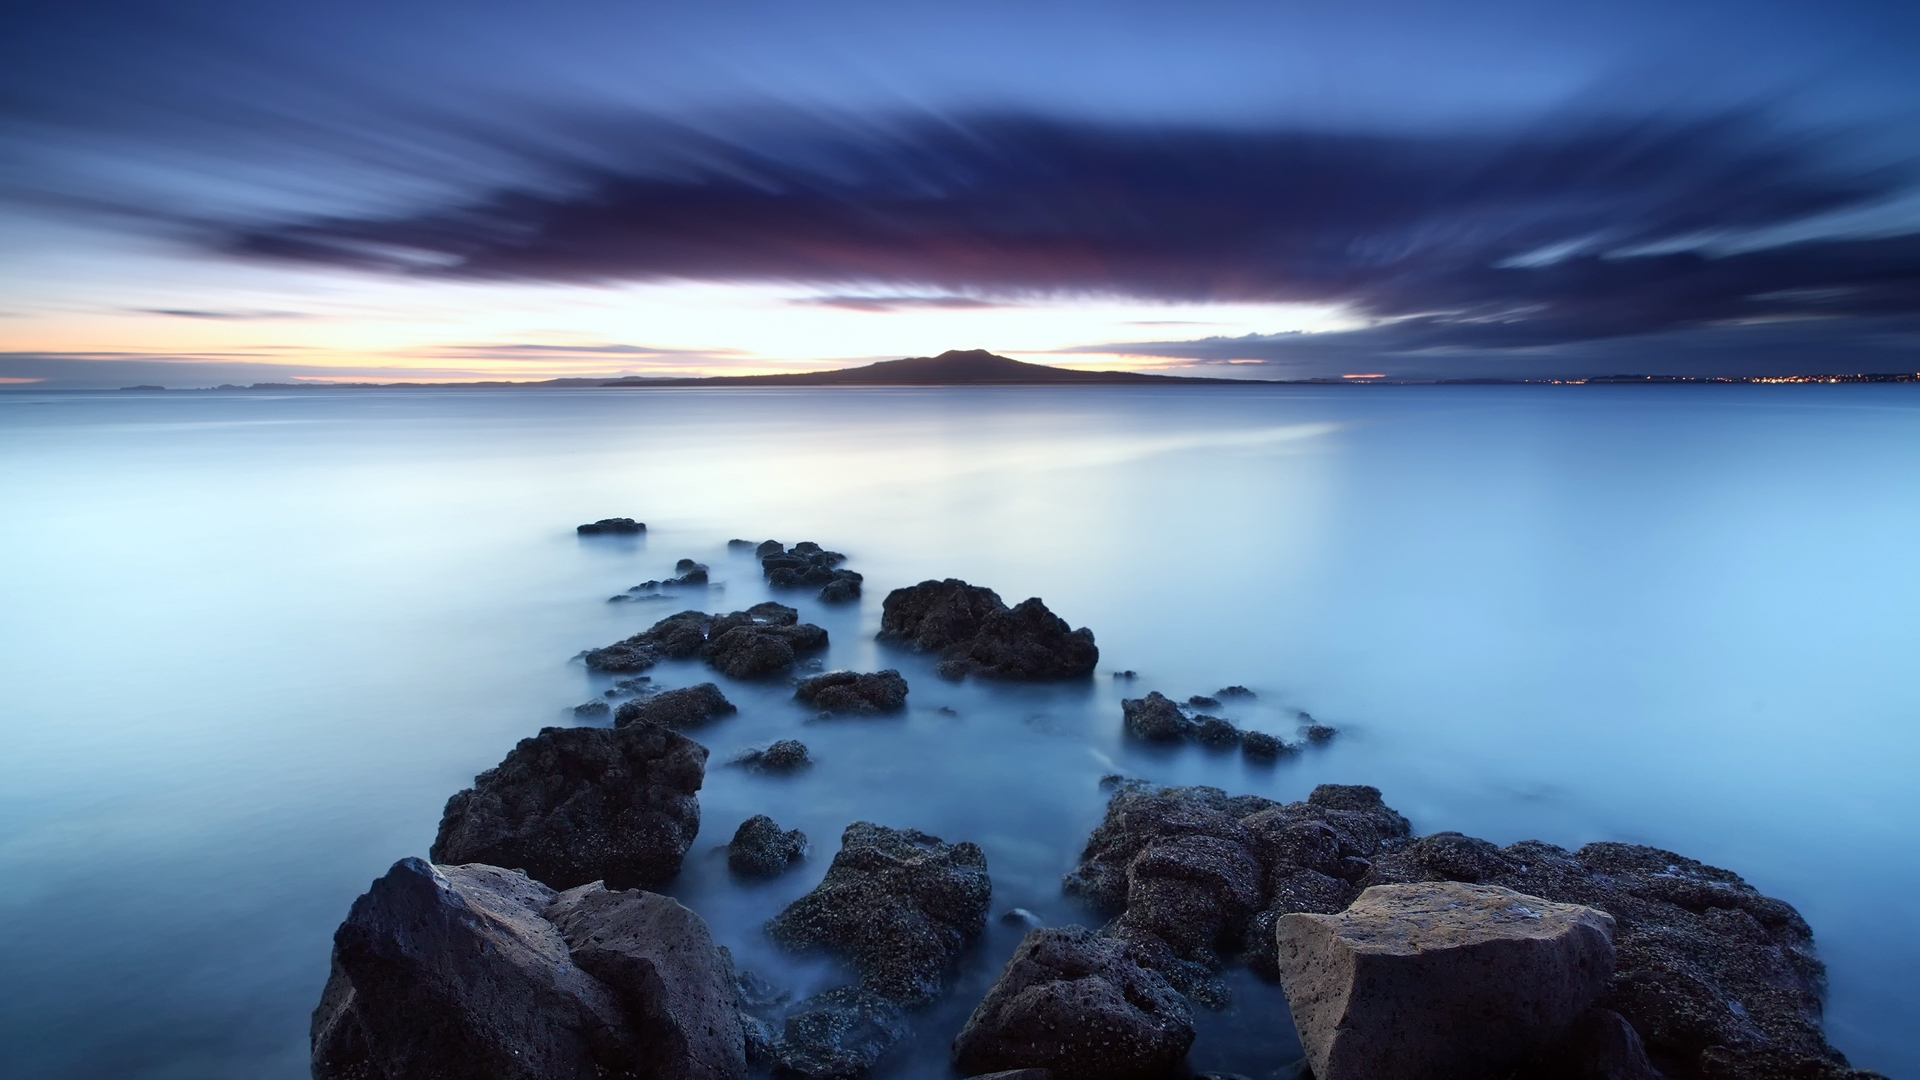 31681 download wallpaper Landscape, Mountains, Sea screensavers and pictures for free